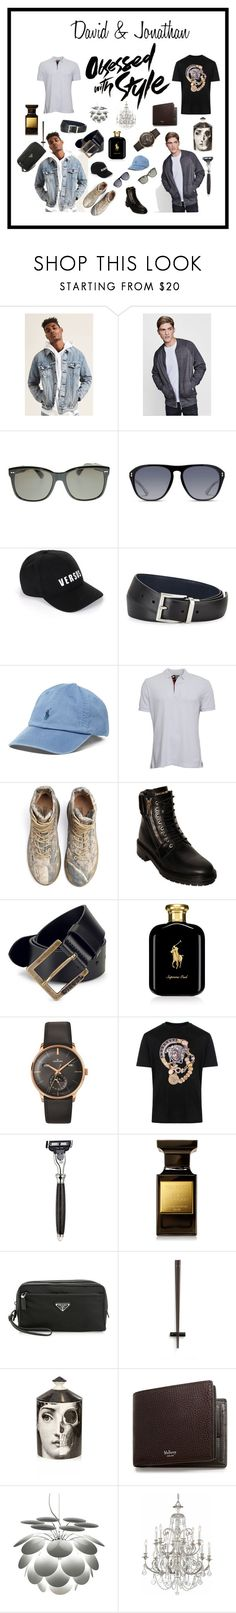 David & Jonathan by sagaltheophilmarak on Polyvore featuring Versace, Burberry, 21 Men, Boohoo, Yeezy by Kanye West, Balmain, Longines, Gucci, Mulberry and Diesel